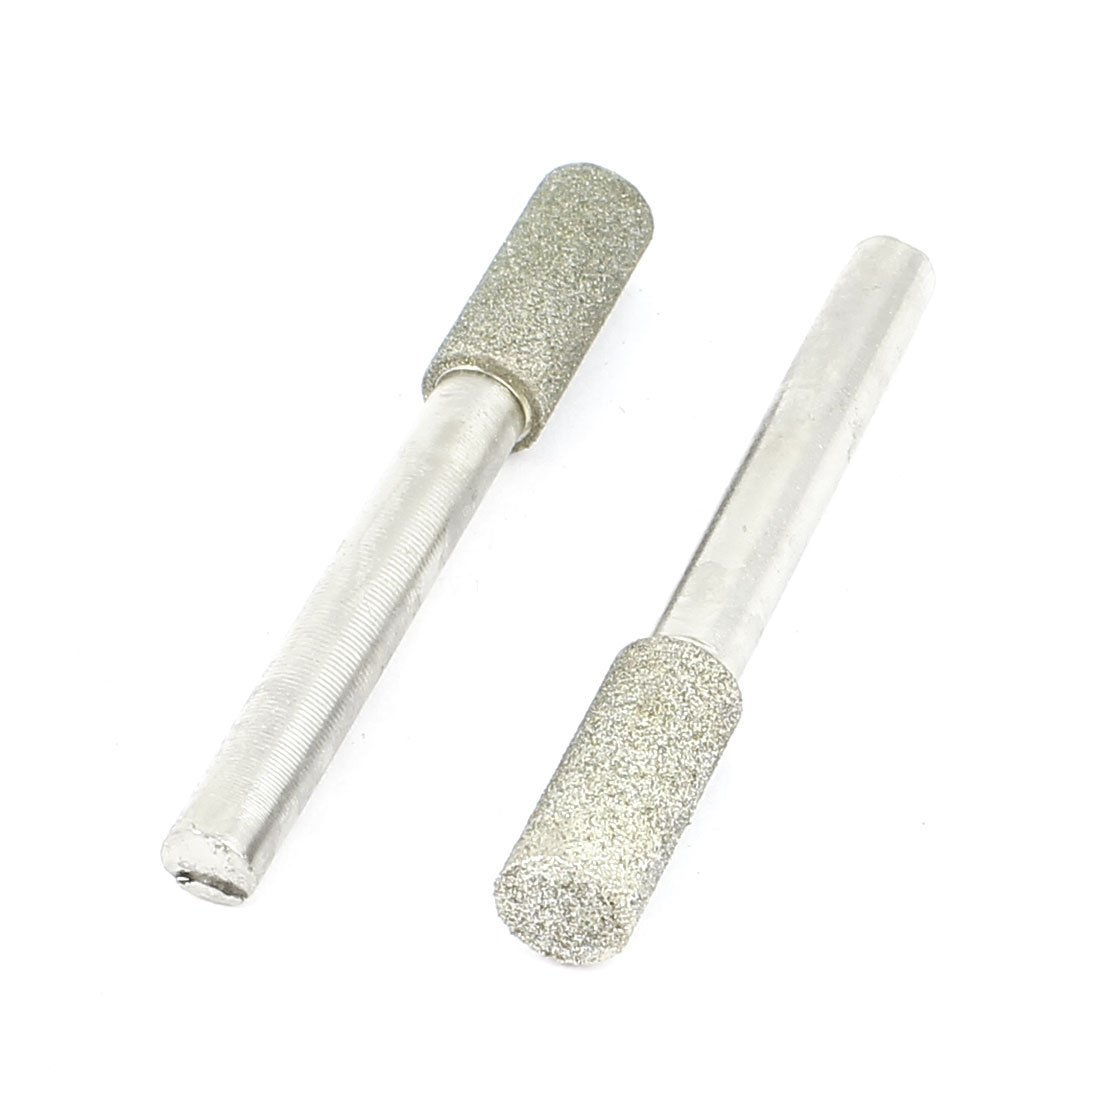 6mm Shank 8mm Cylinder Head Mounted Points Grinding Bit 2 Pcs Sourcingmap a14102700ux0122